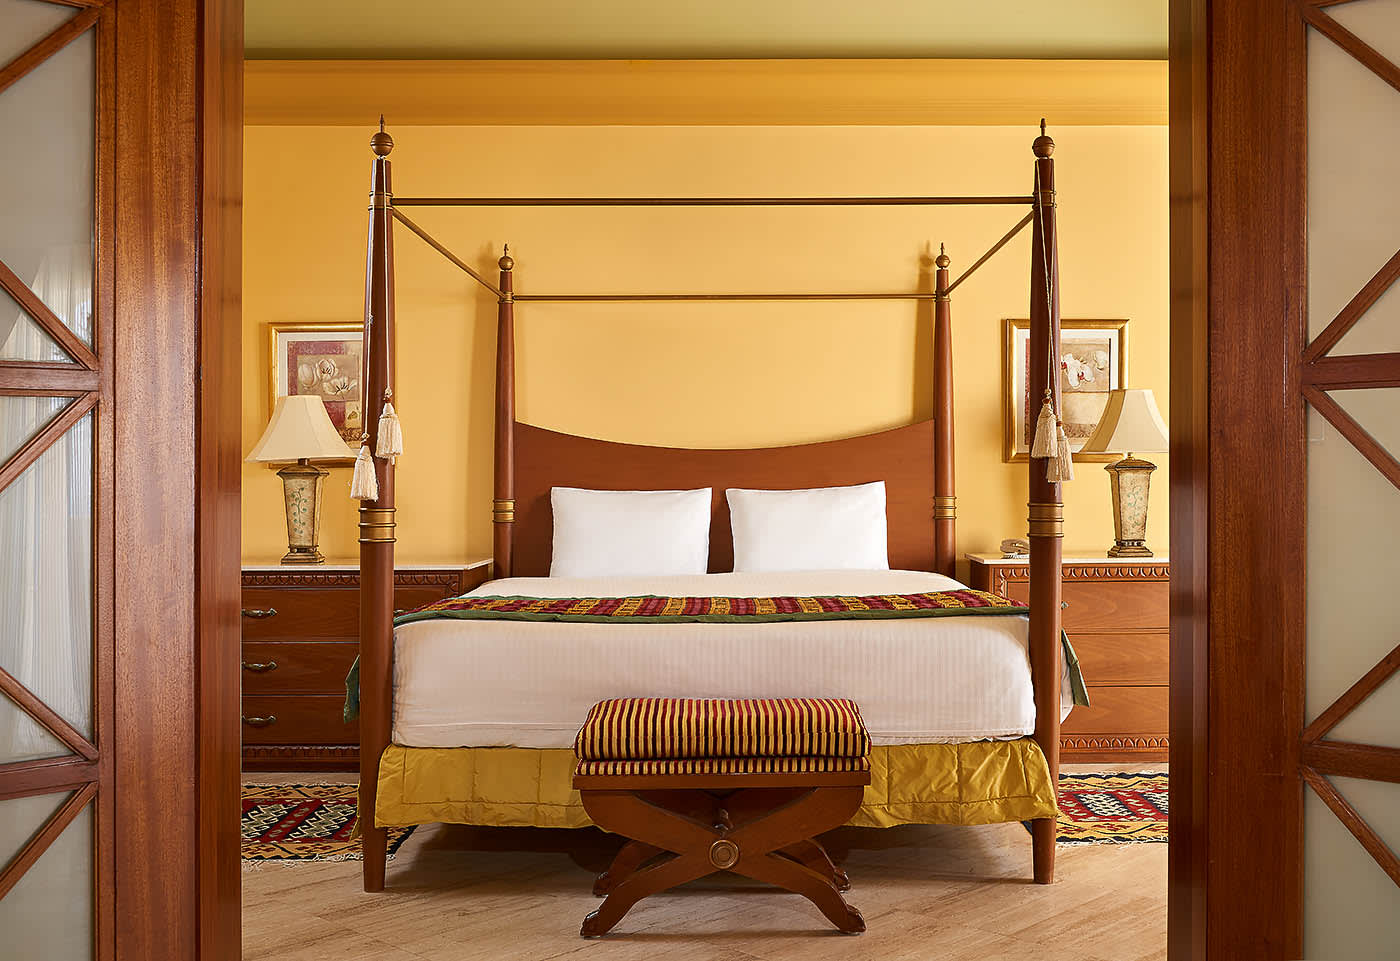 Sofitel Taba heights beach resort Presidential Suite bedroom - Mohamed Abdel-Hady photography